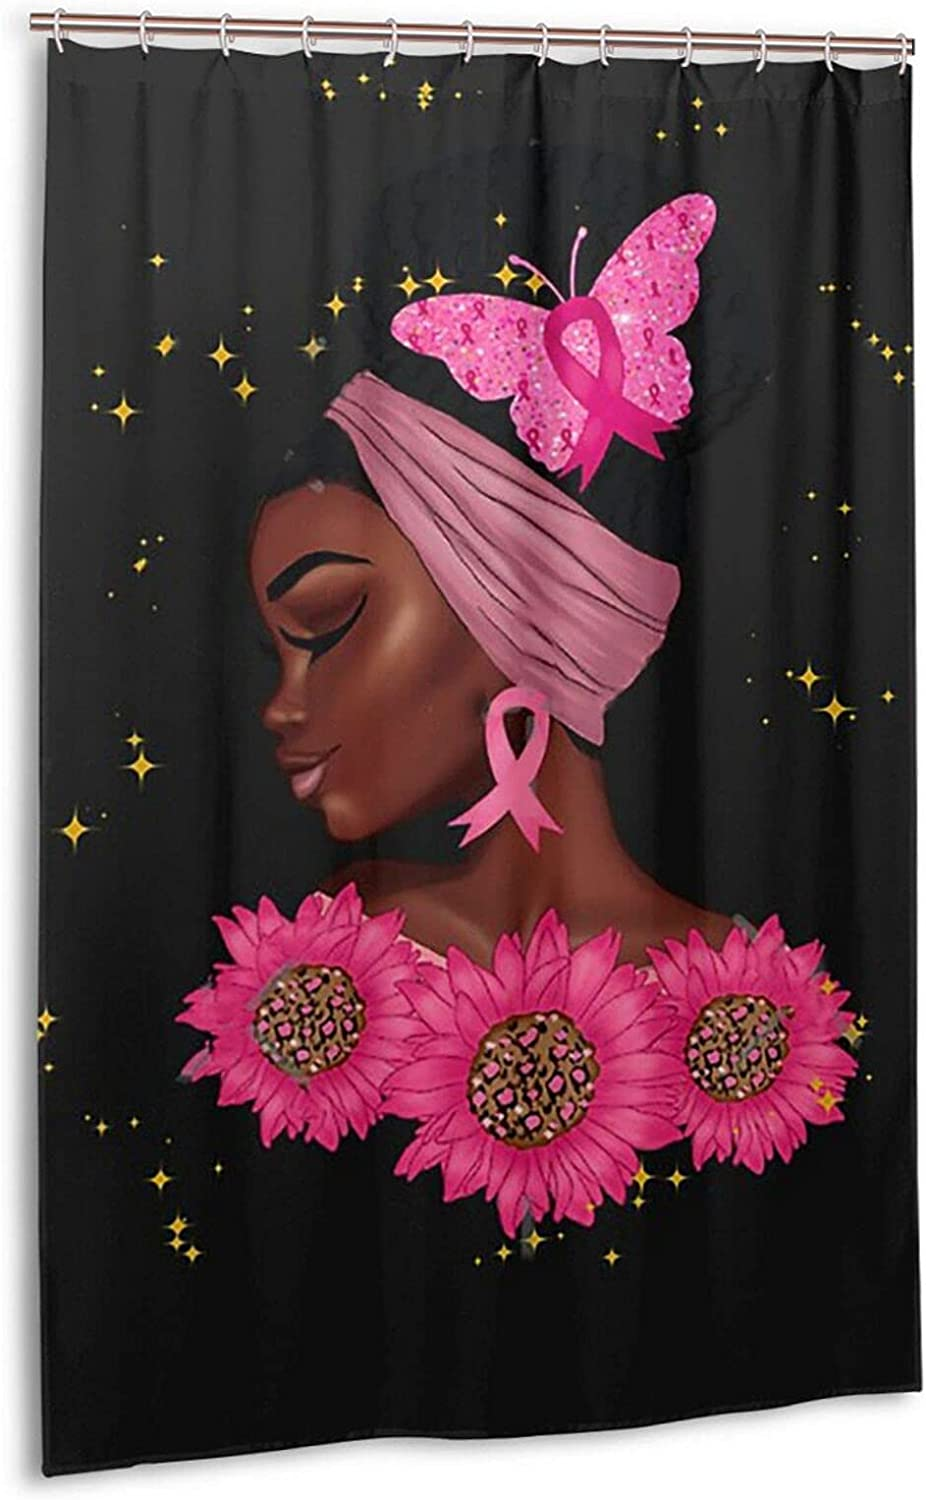 SYUTZSING Black Breast Cancer Awareness Shower Popularity Set Max 87% OFF Girl Curtain